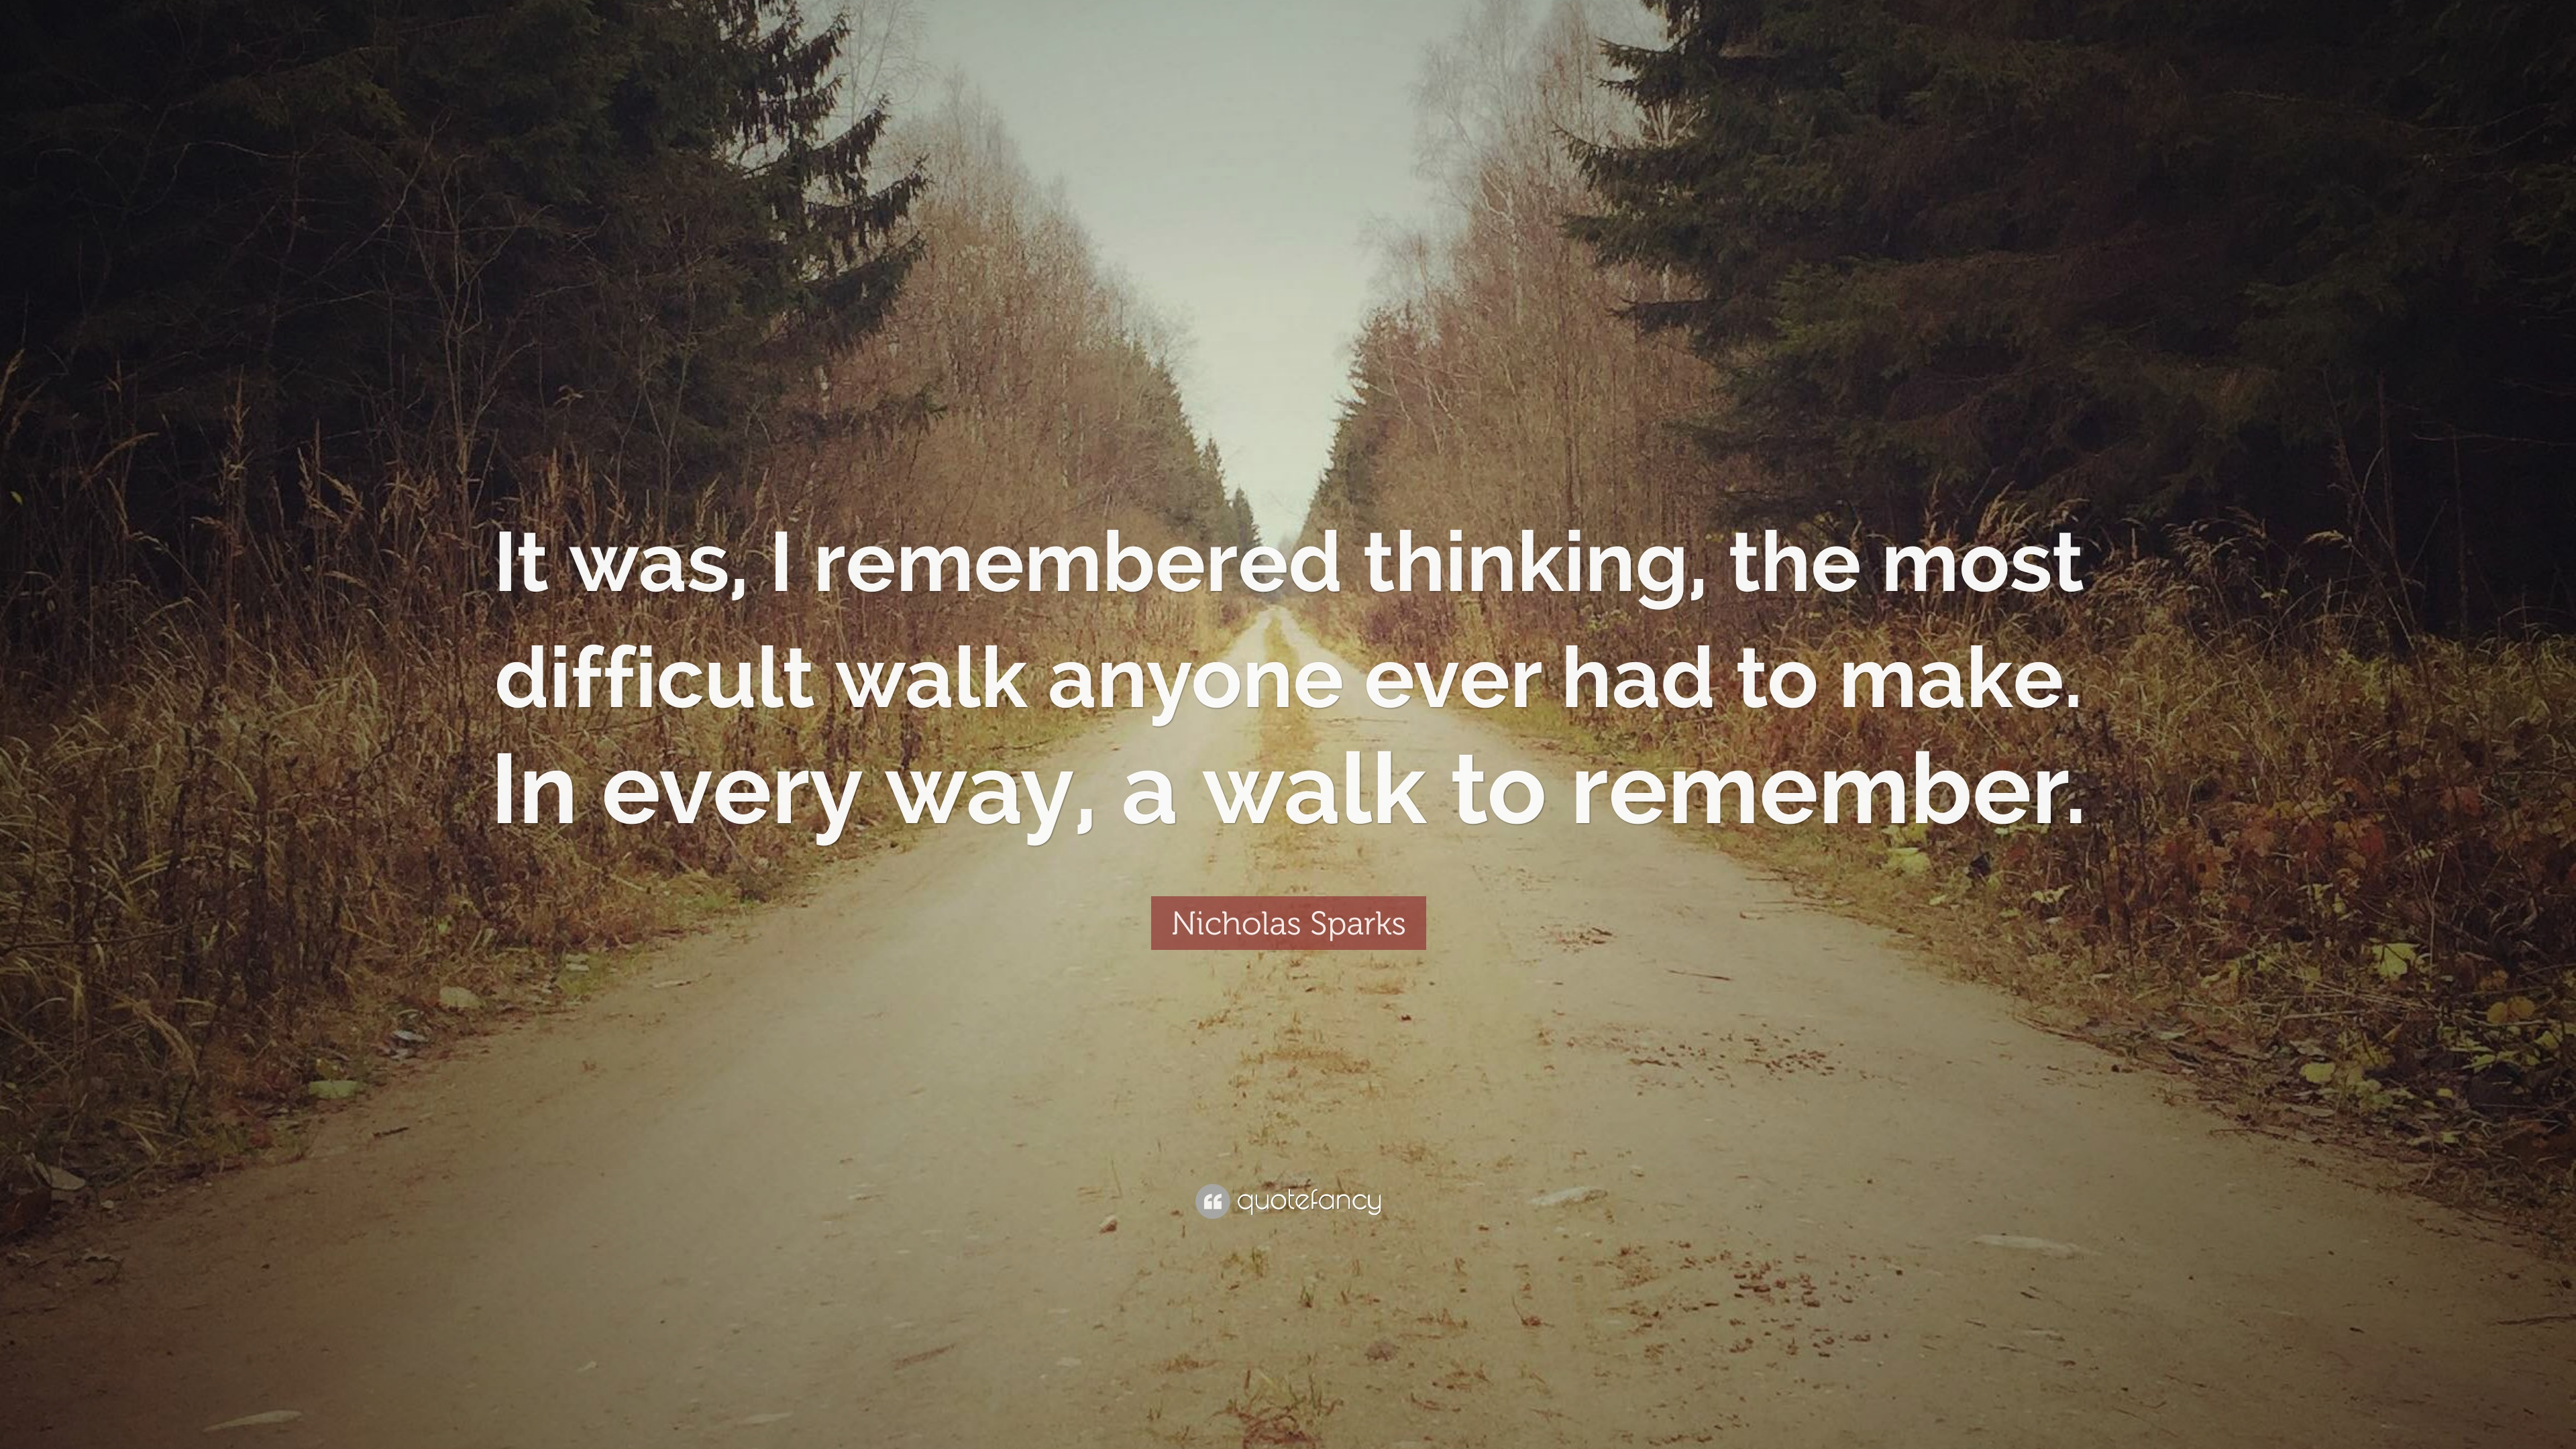 a walk to remember quotes wallpaper - photo #13